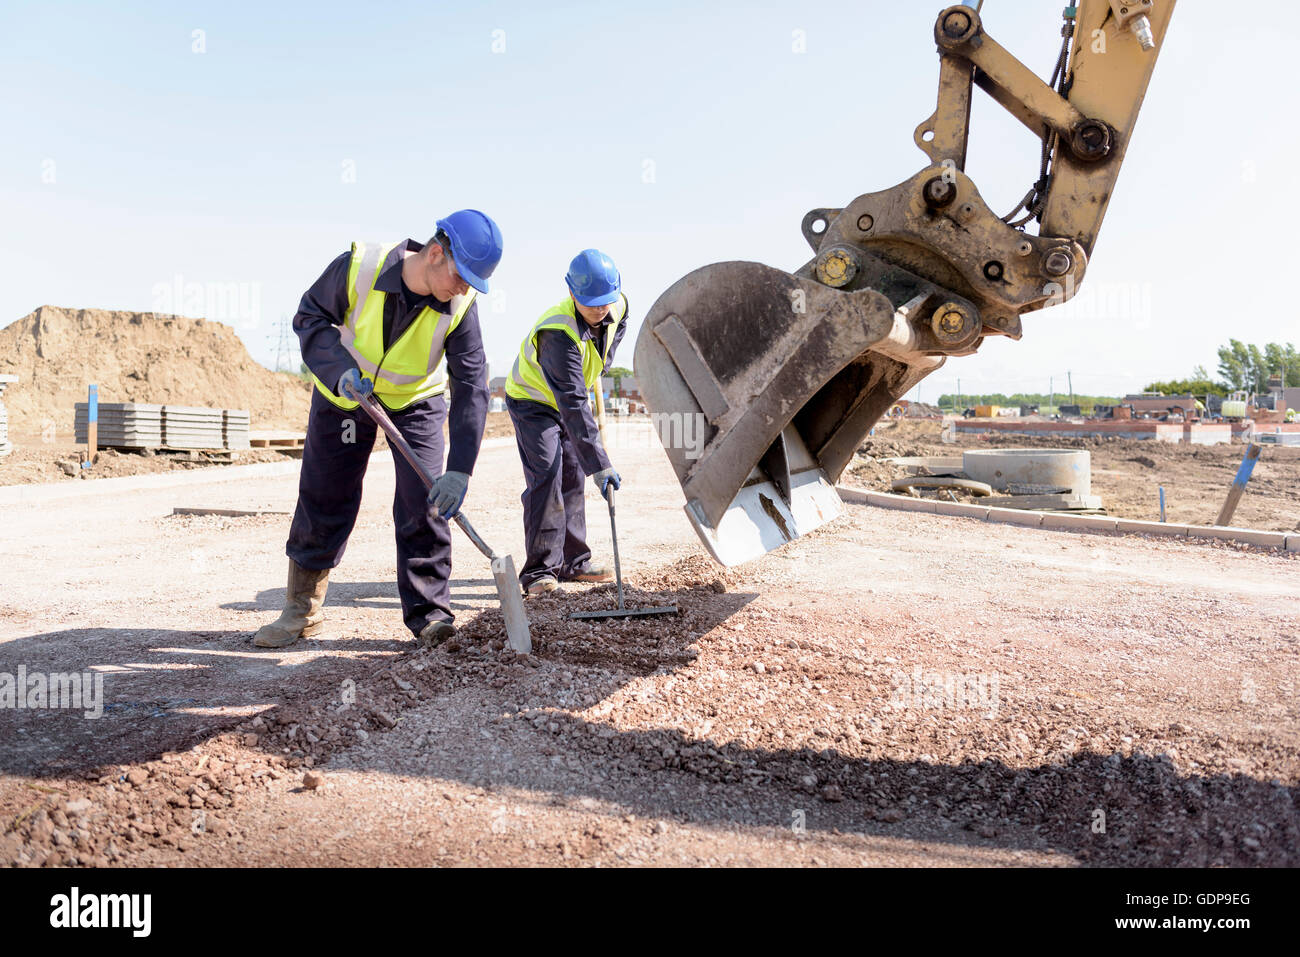 Apprentice builders levelling road with digger on building site - Stock Image